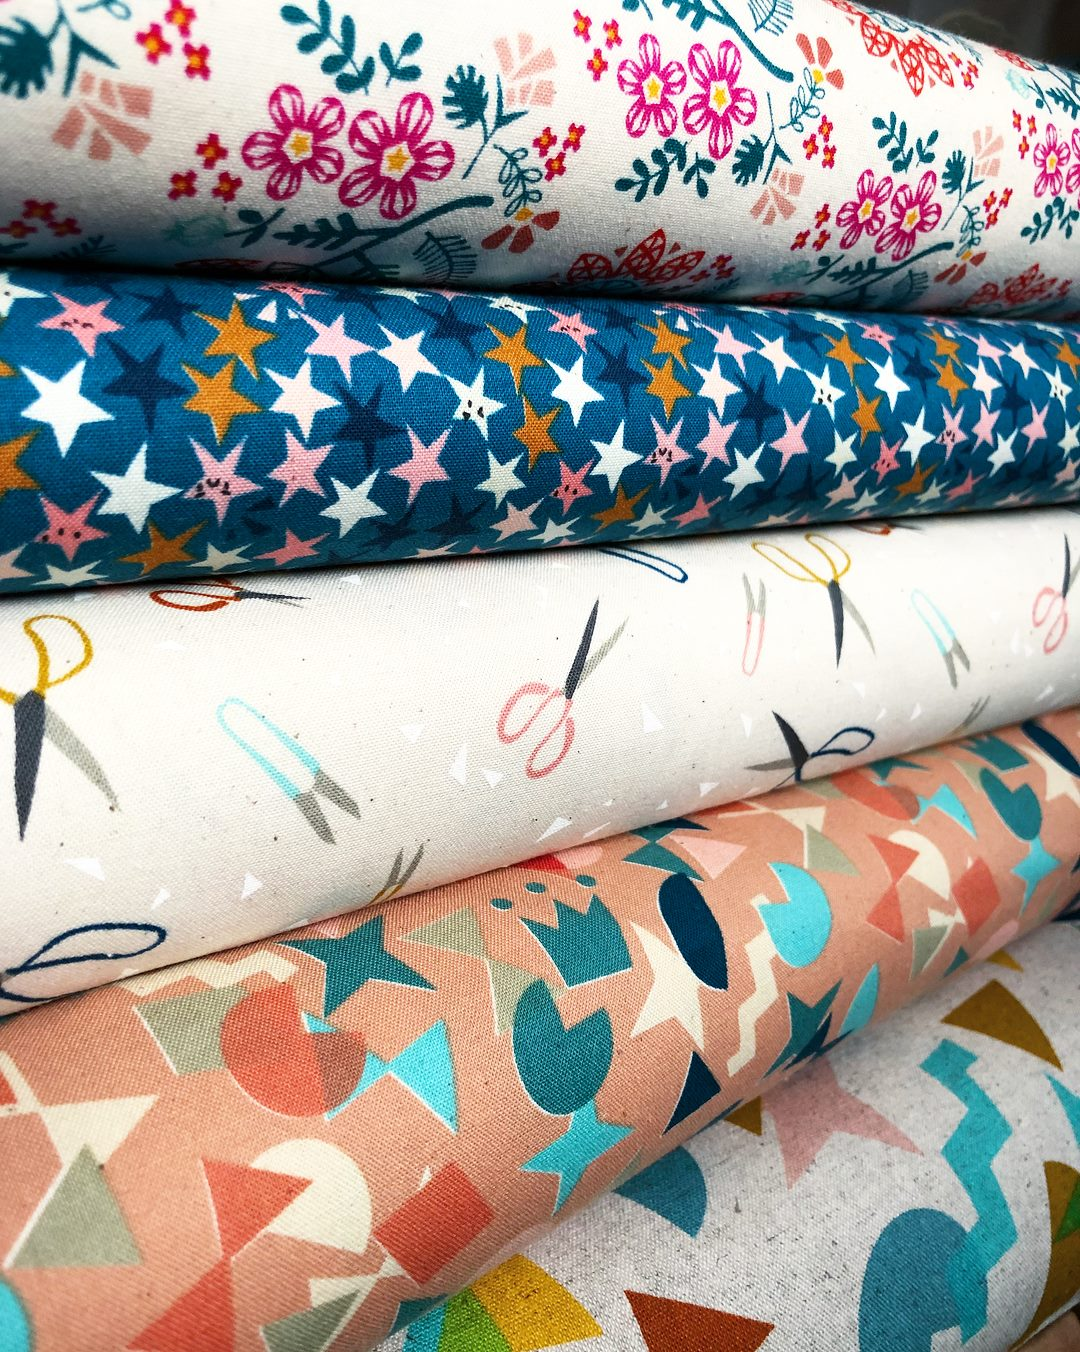 Sewing Stores Near Me : sewing, stores, Domesticity, Fabric, Sewing, Studio